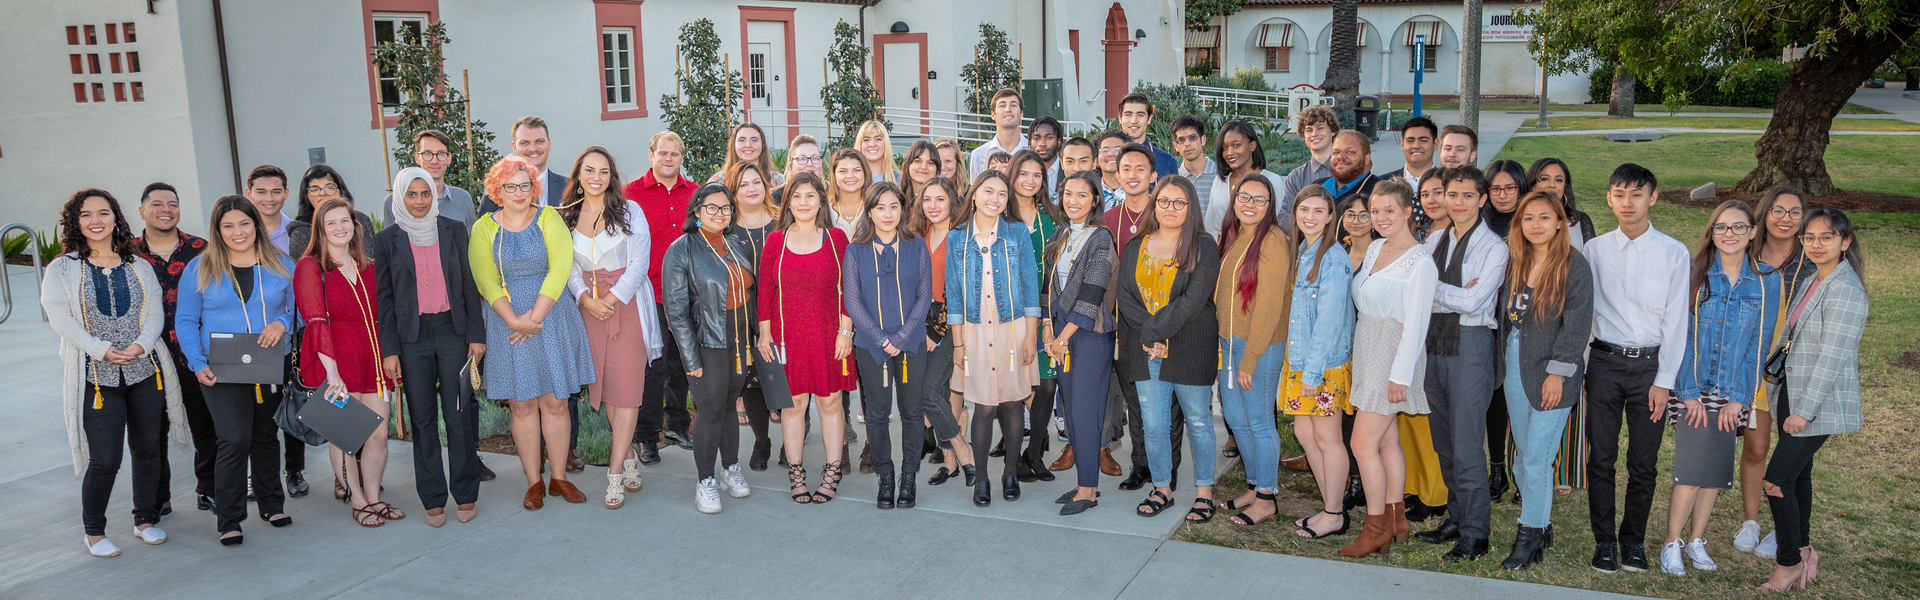 A group shot of LBCC Honors students.